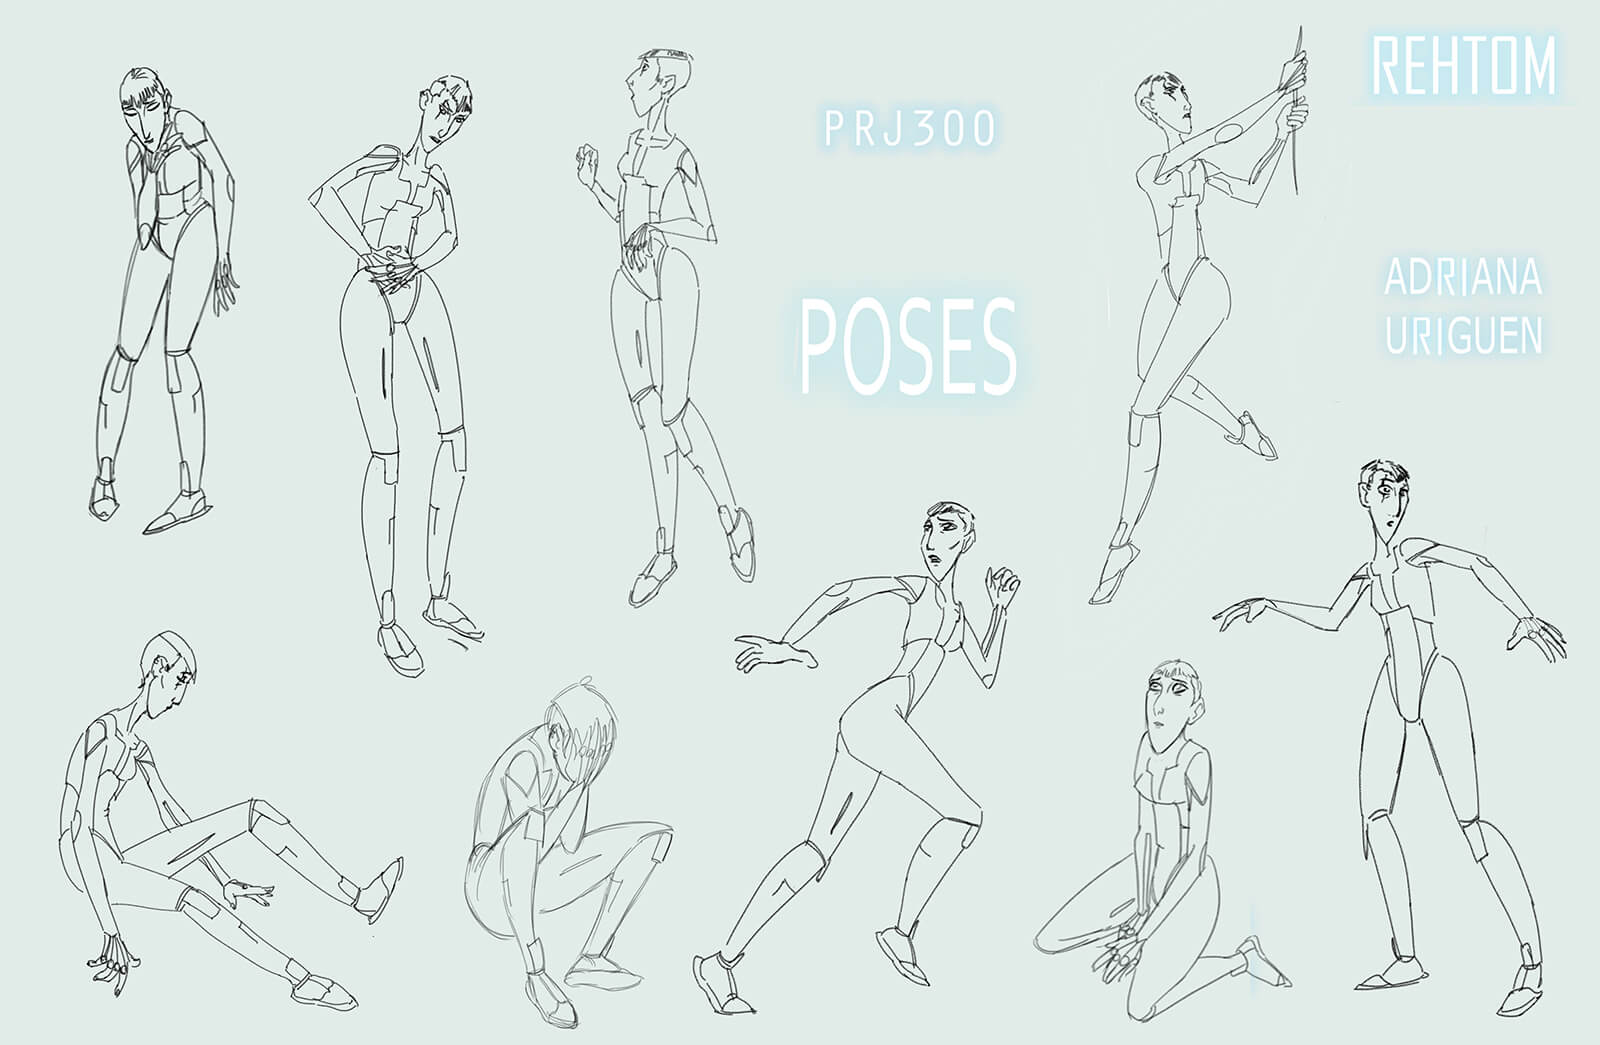 Black-and-white sketches of poses for a tall, thin woman, including running, sitting, and kneeling among others